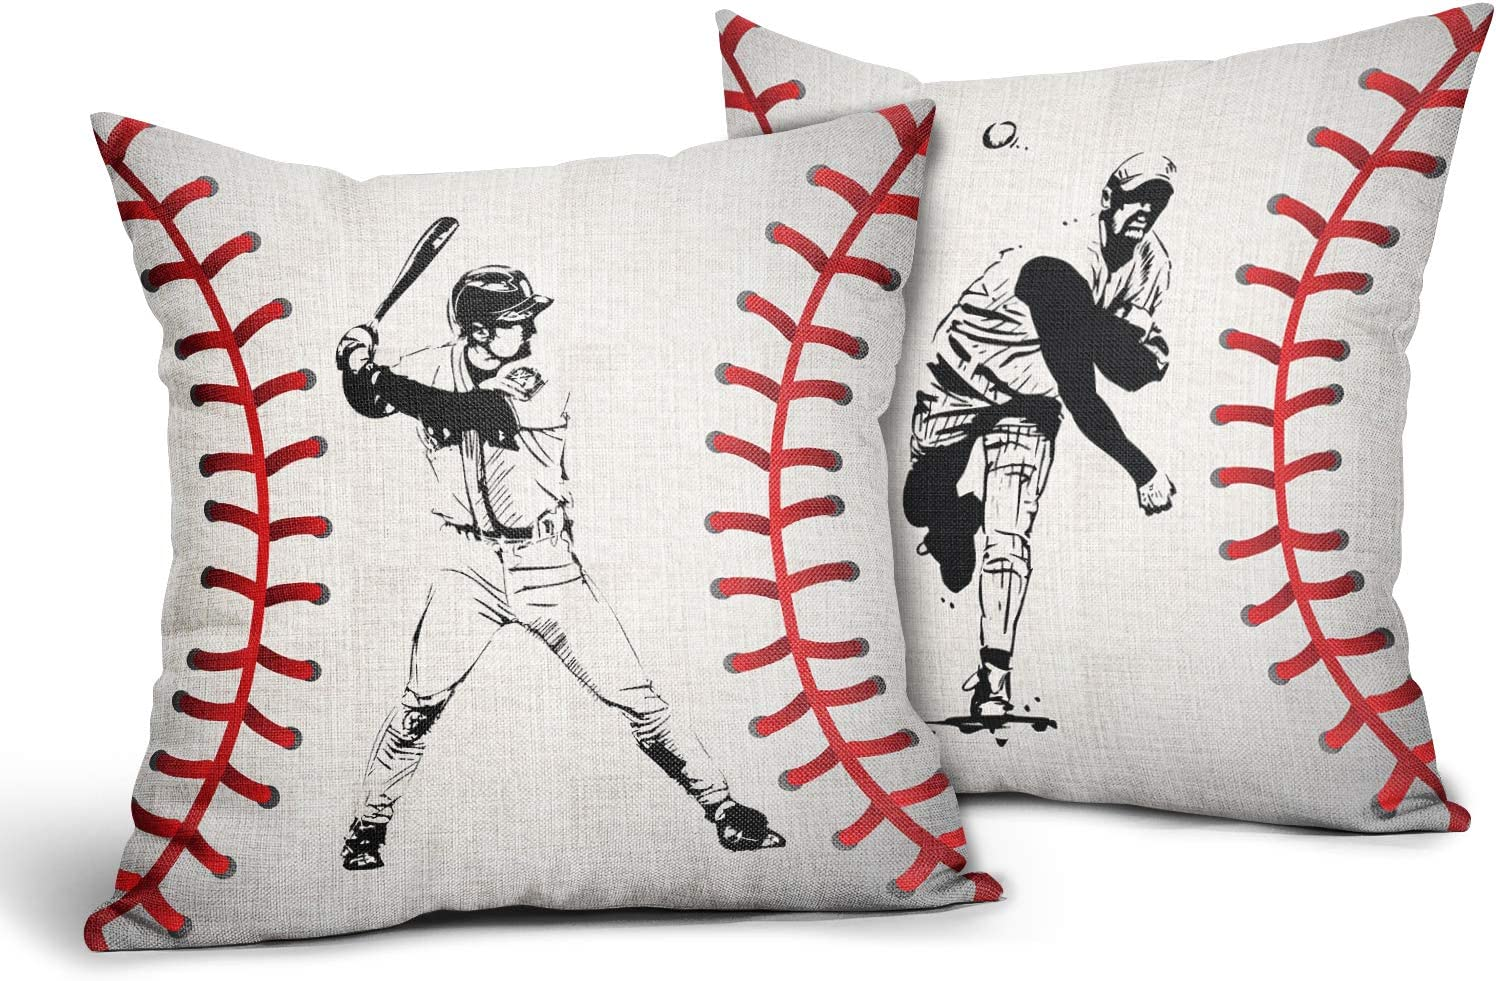 Baseball Design Pillow Cases Baseball Athlete Pitcher Hitter Throw Pillow Covers Set of 2 Ball Sport Themed Cotton Linen Decorative Cushion Cover 18x18 Gifts for Boys Men Living Room Couch Office